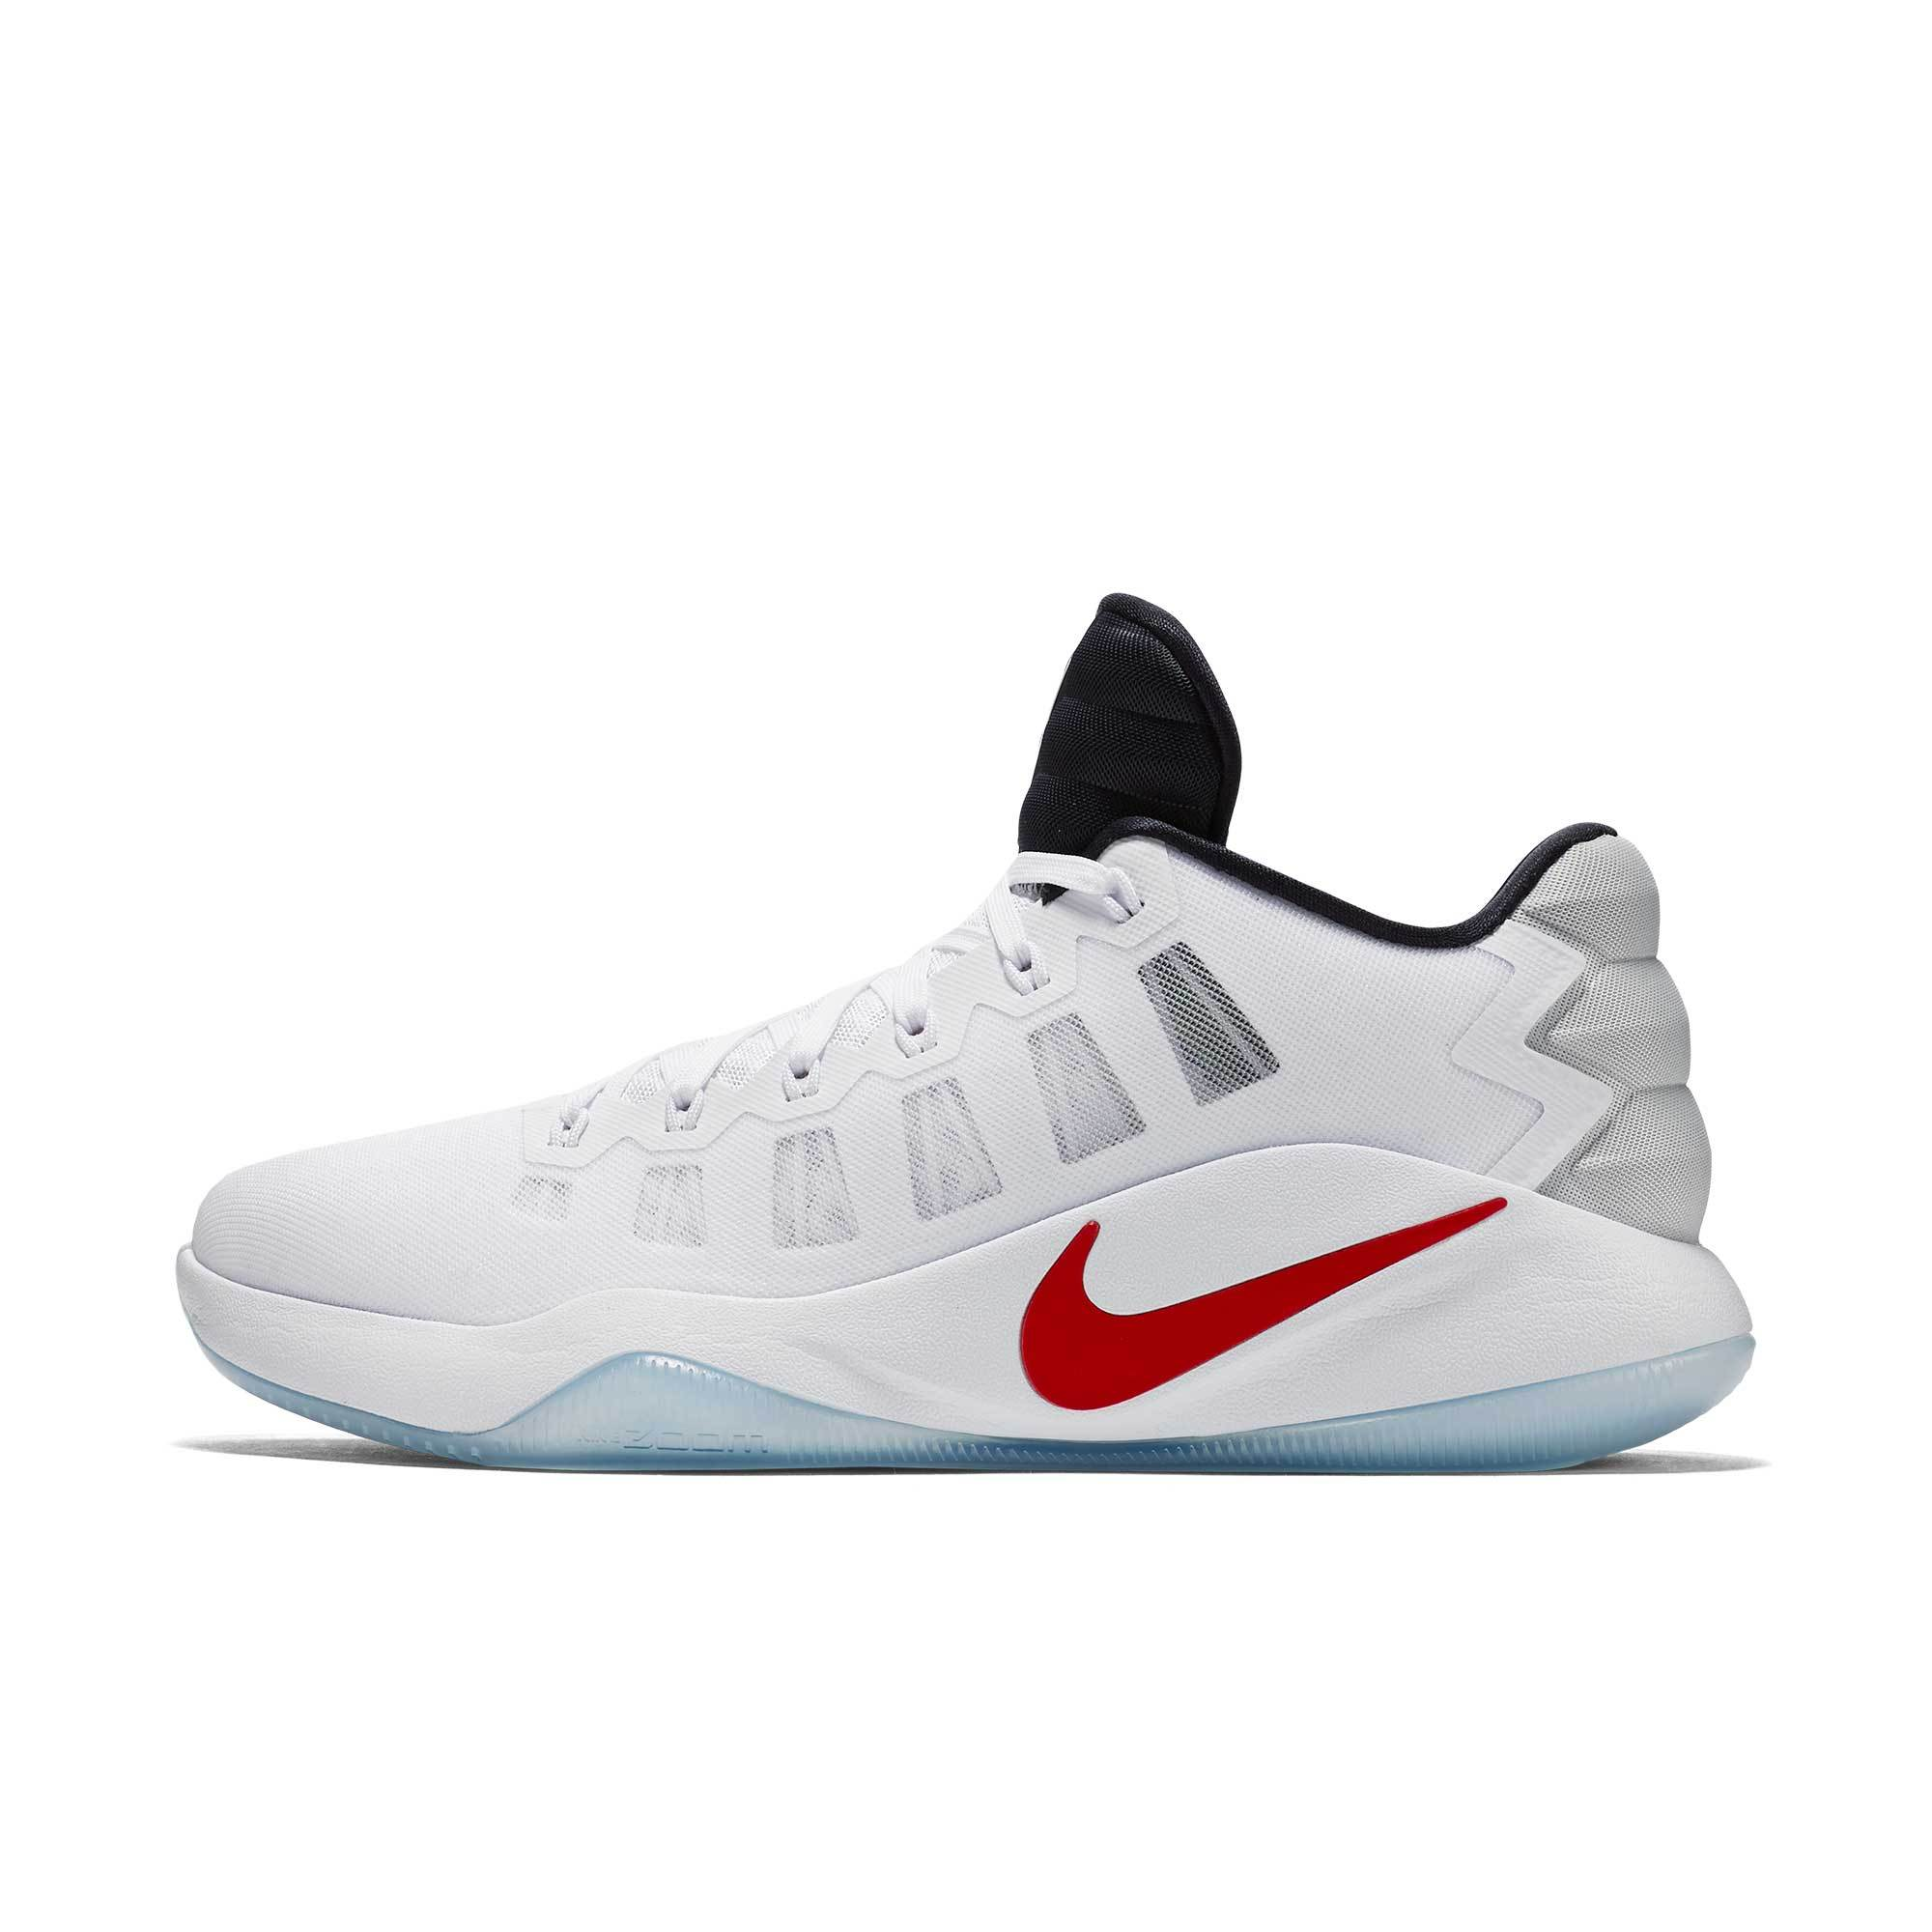 best authentic 9e7b9 d8a06 Get Quotations · Nike hyperdunk 2016 low xdr zoom cushion team men s  basketball shoes 844364-146